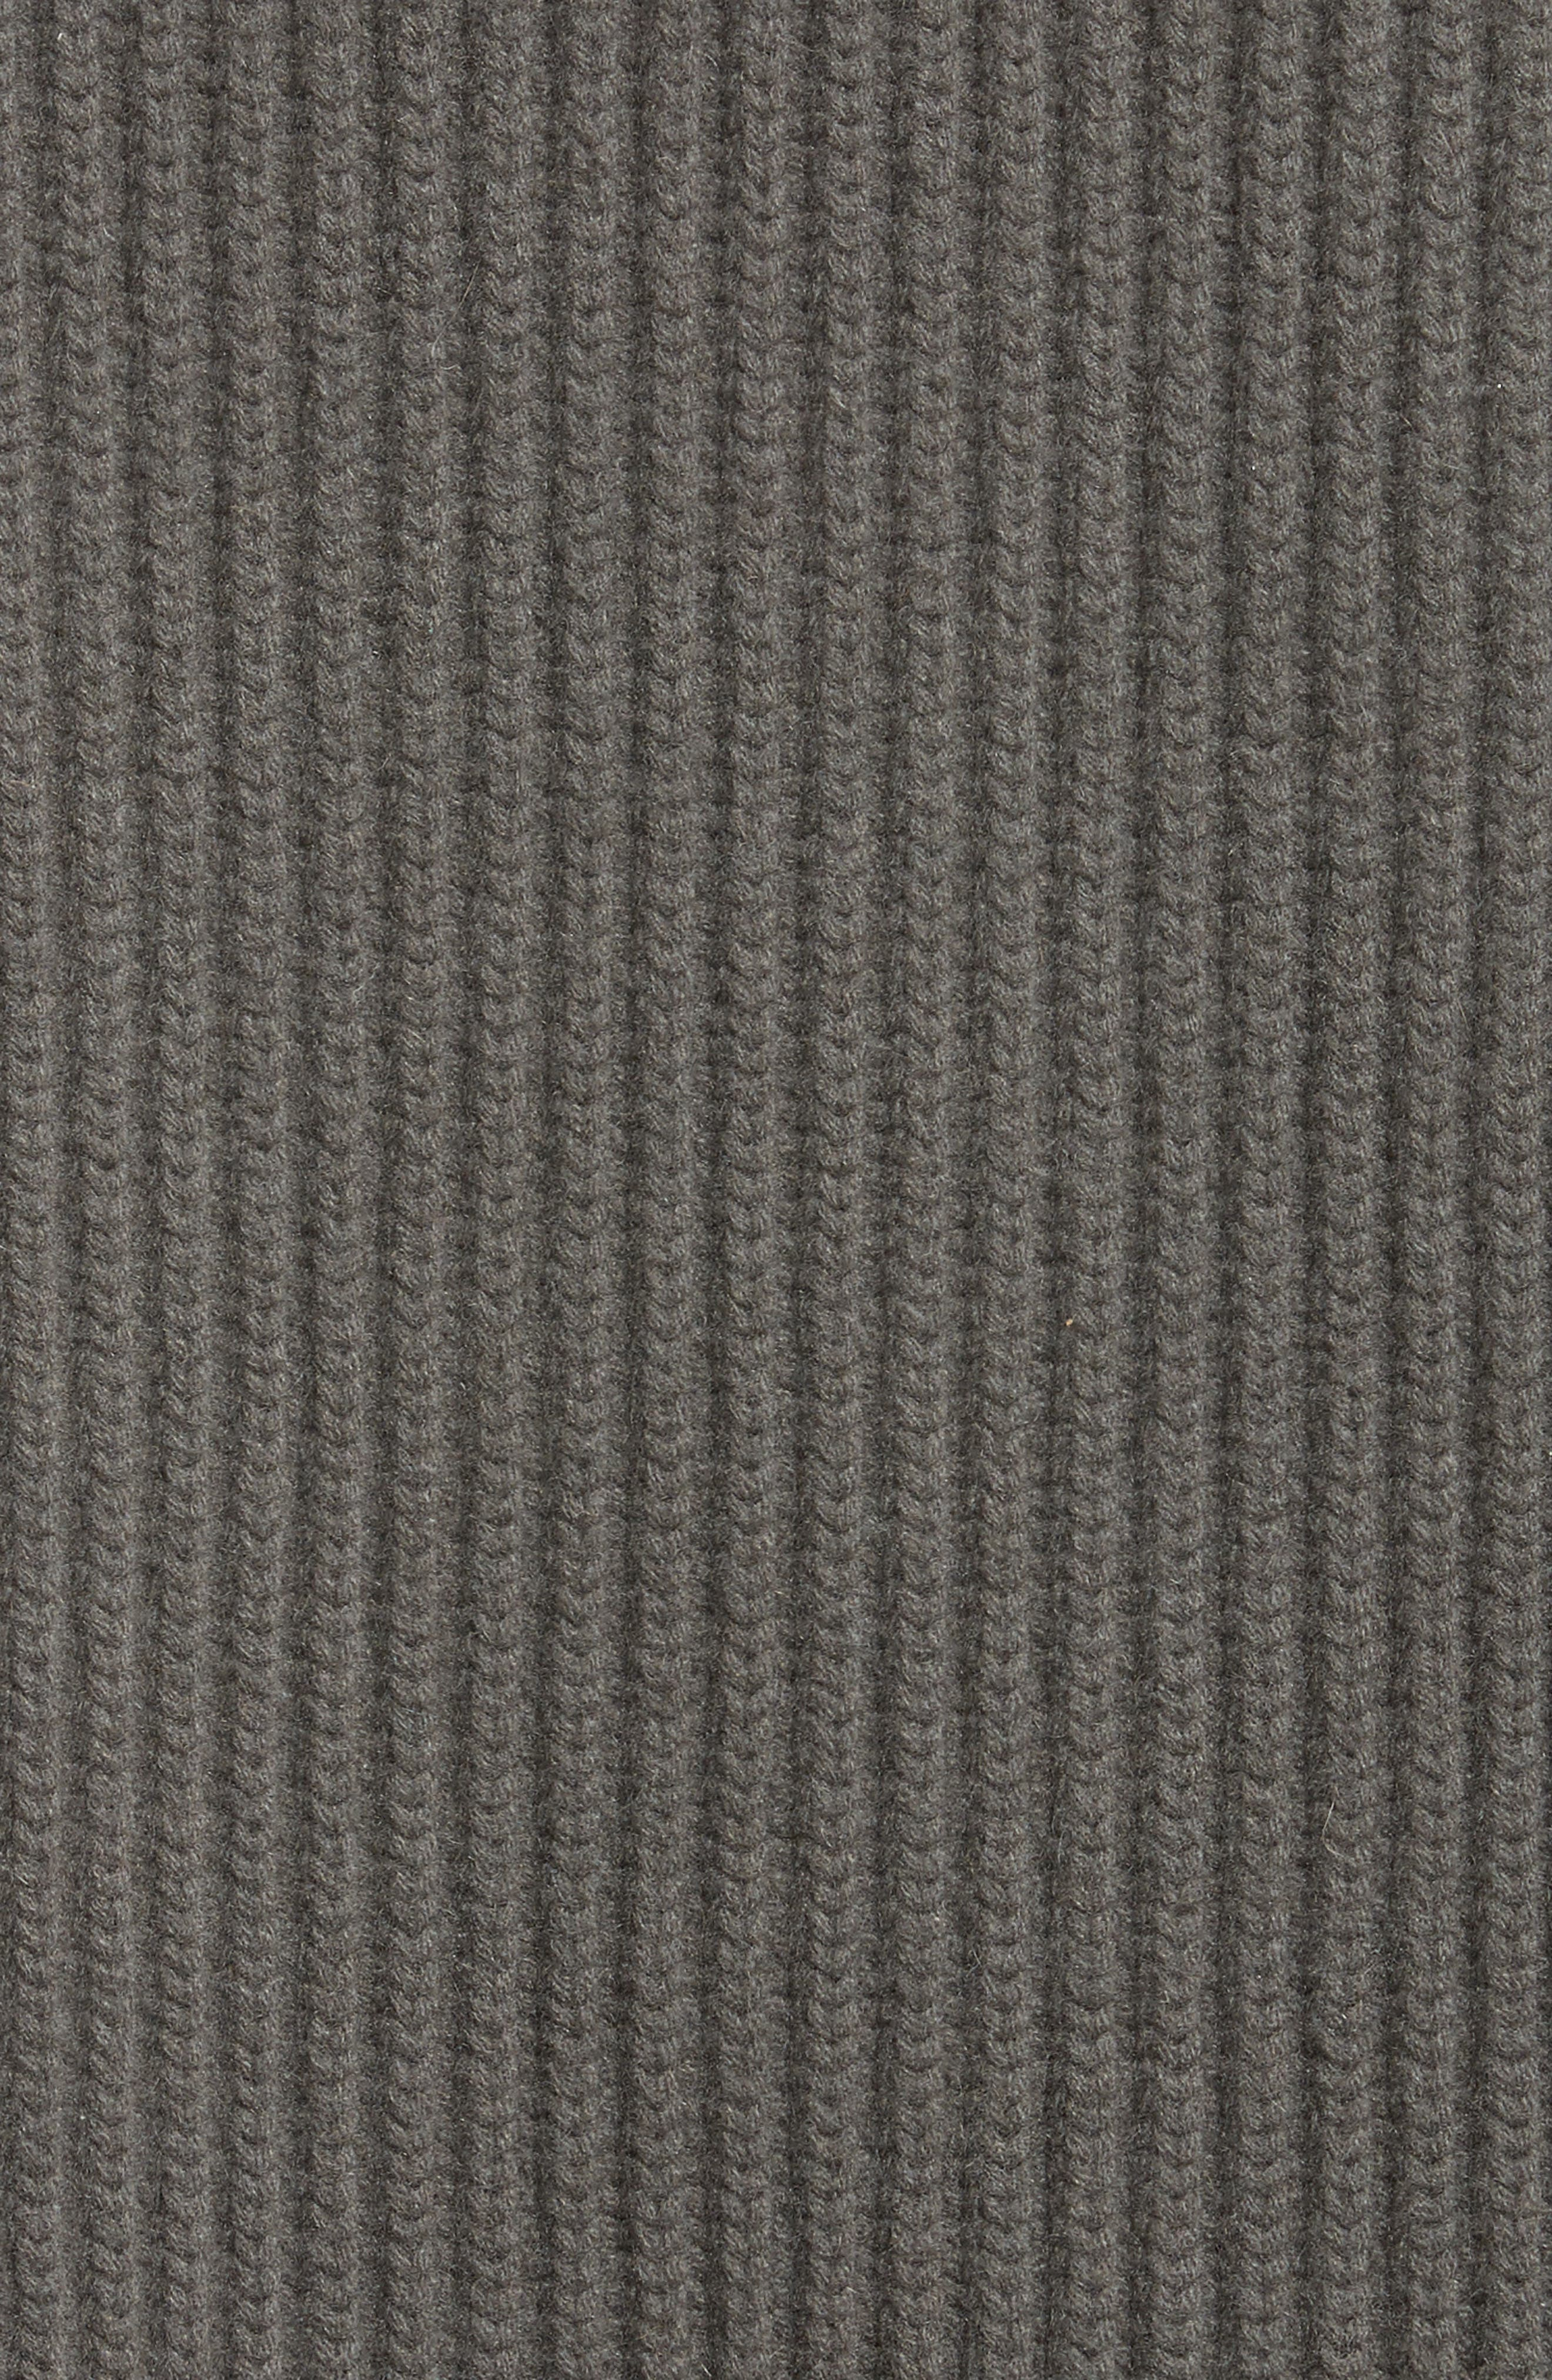 Ciclista Wool & Cashmere Sweater,                             Alternate thumbnail 5, color,                             307